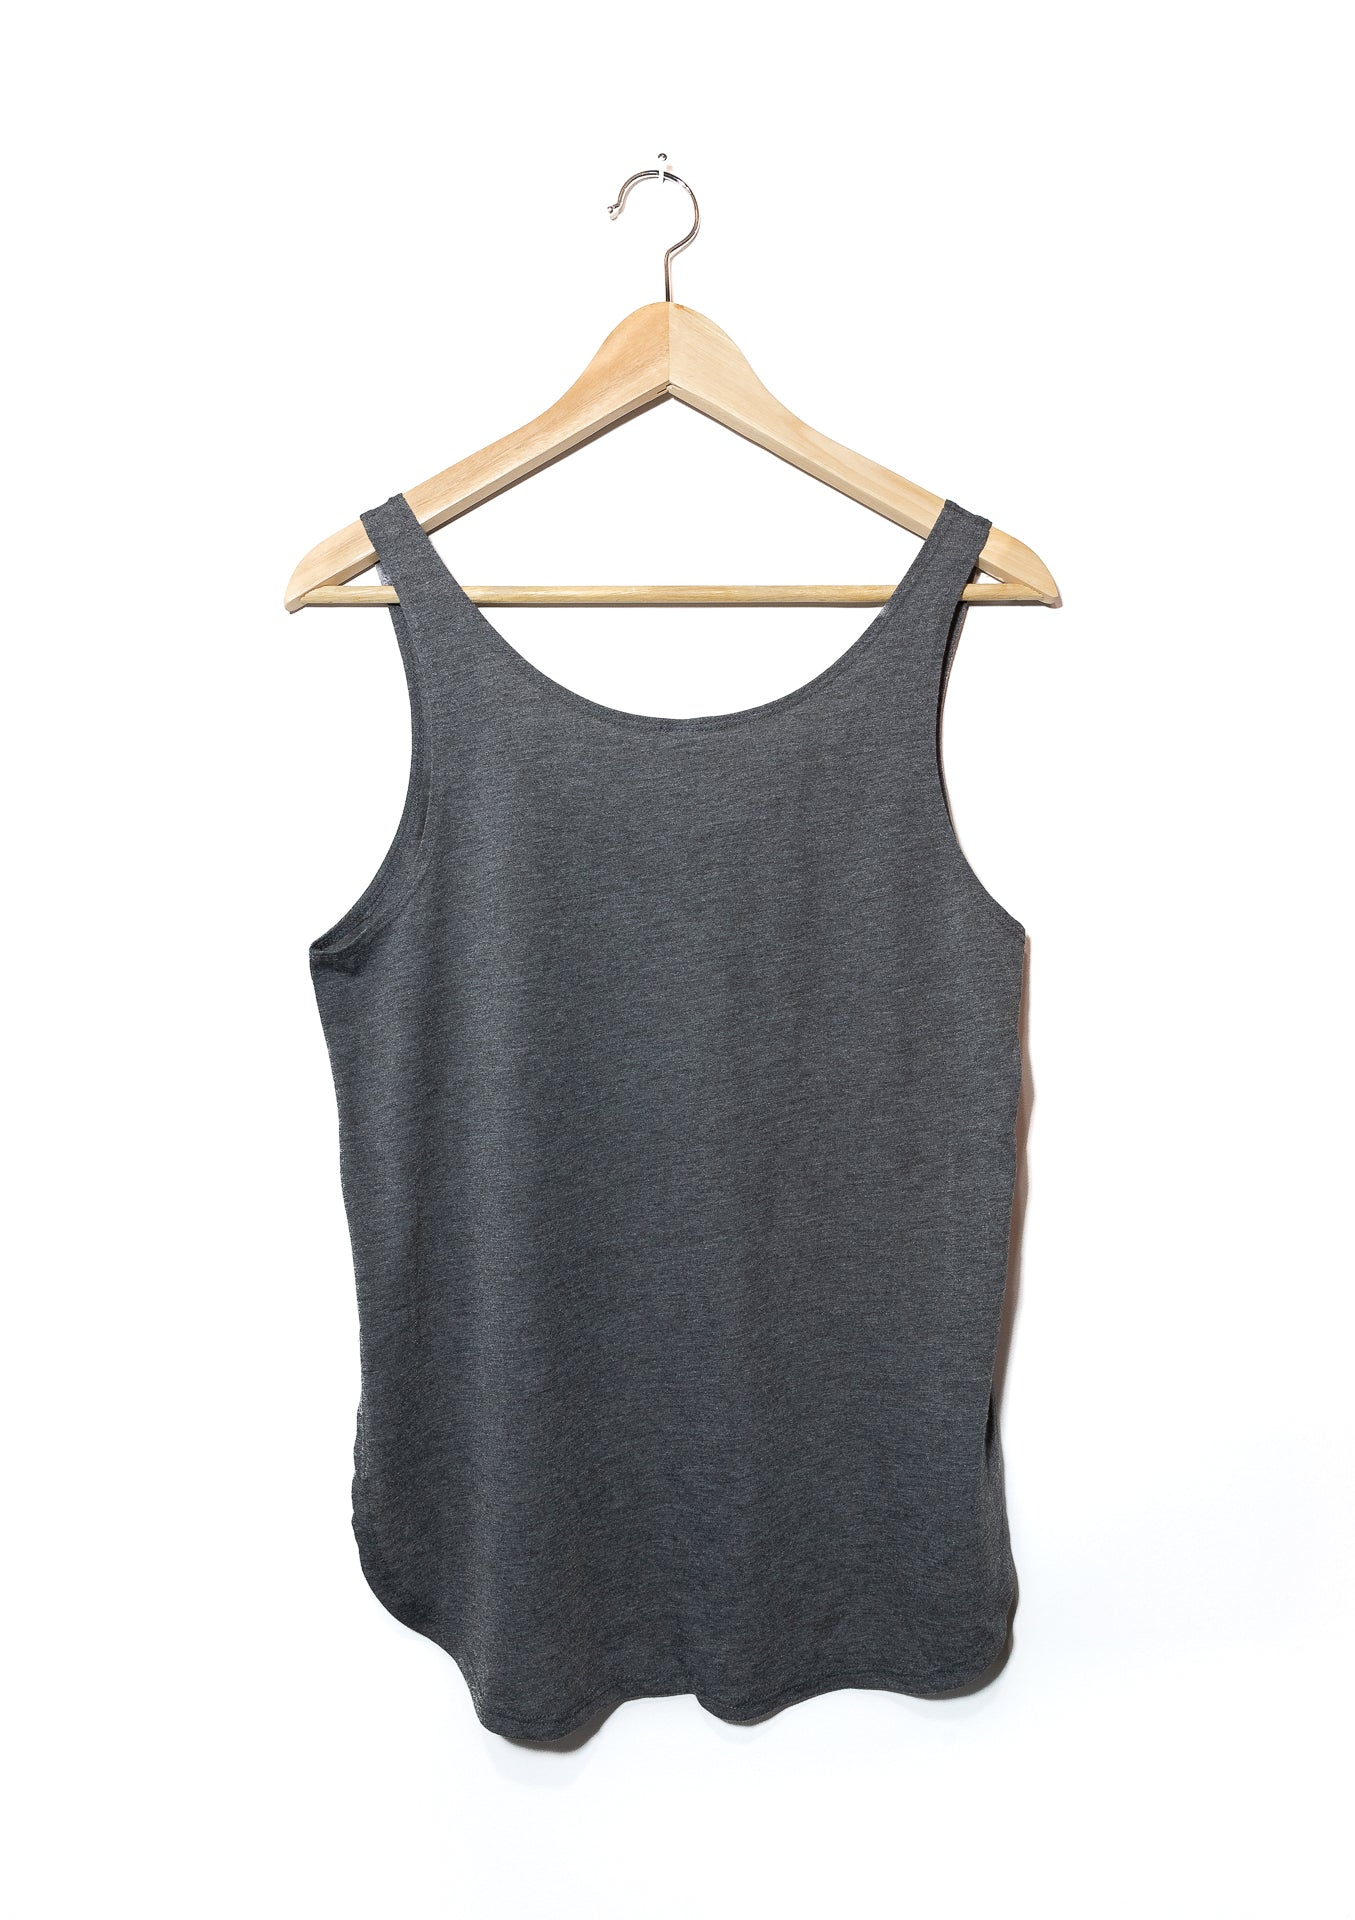 Bare Lyfe Co. - Flux - Women's Relaxed Fit Tank - Grey (Back)